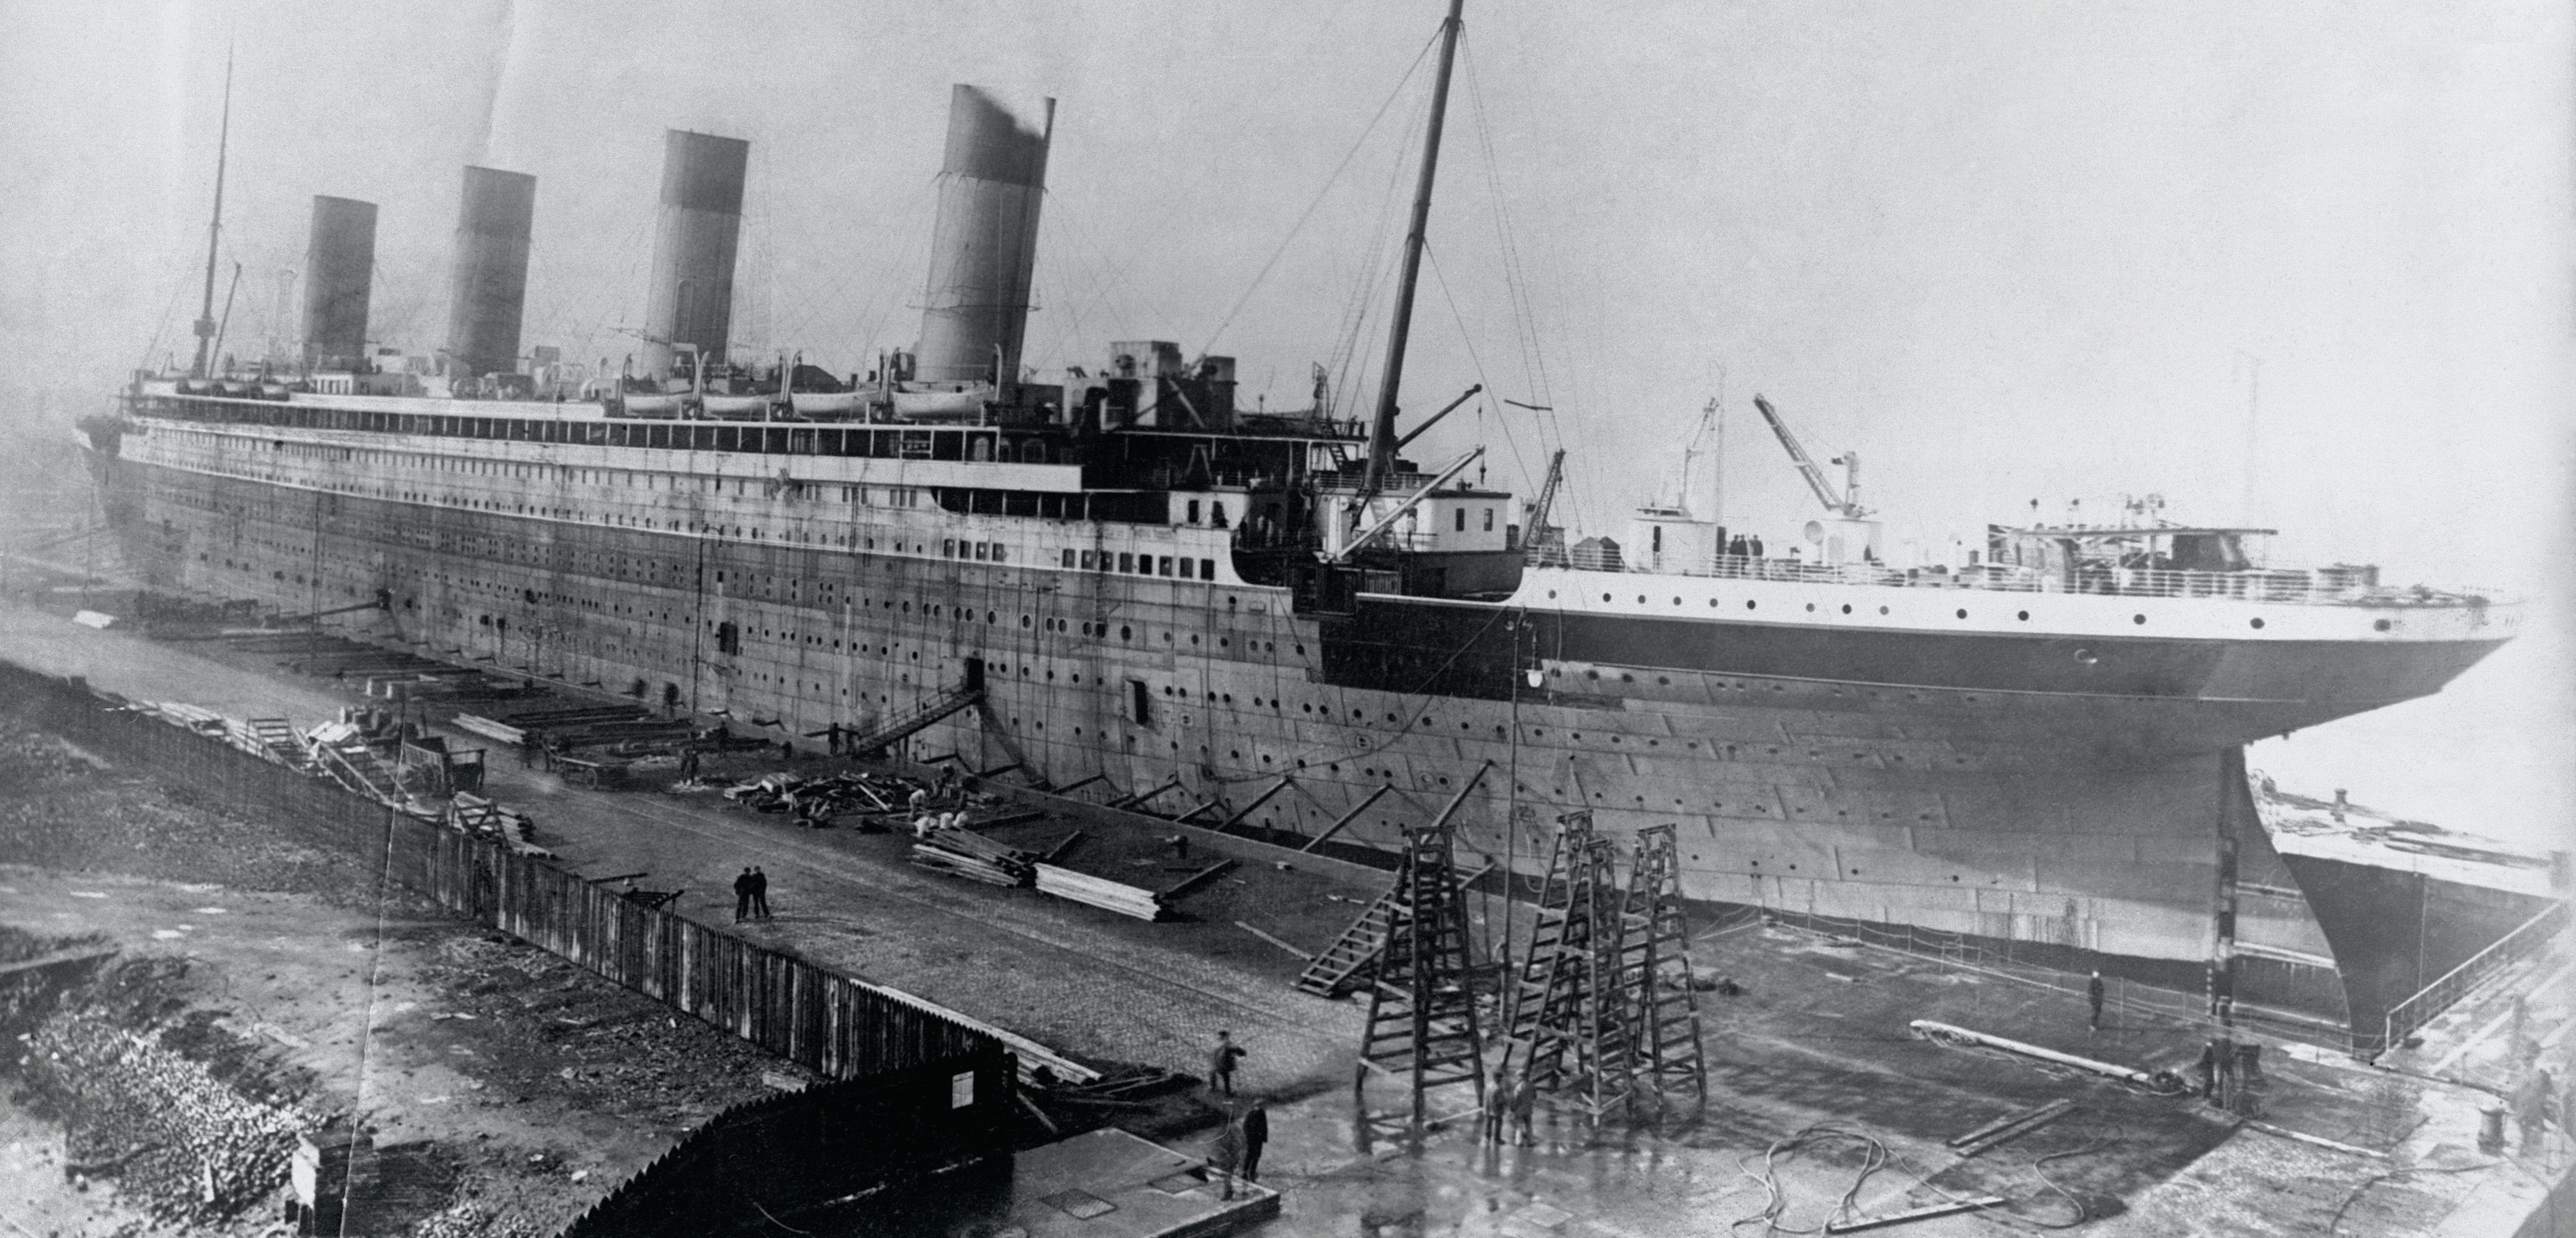 Workers build the S.S. Olympic, one of the Titanic's sister ships. Photo by Bettmann/Corbis